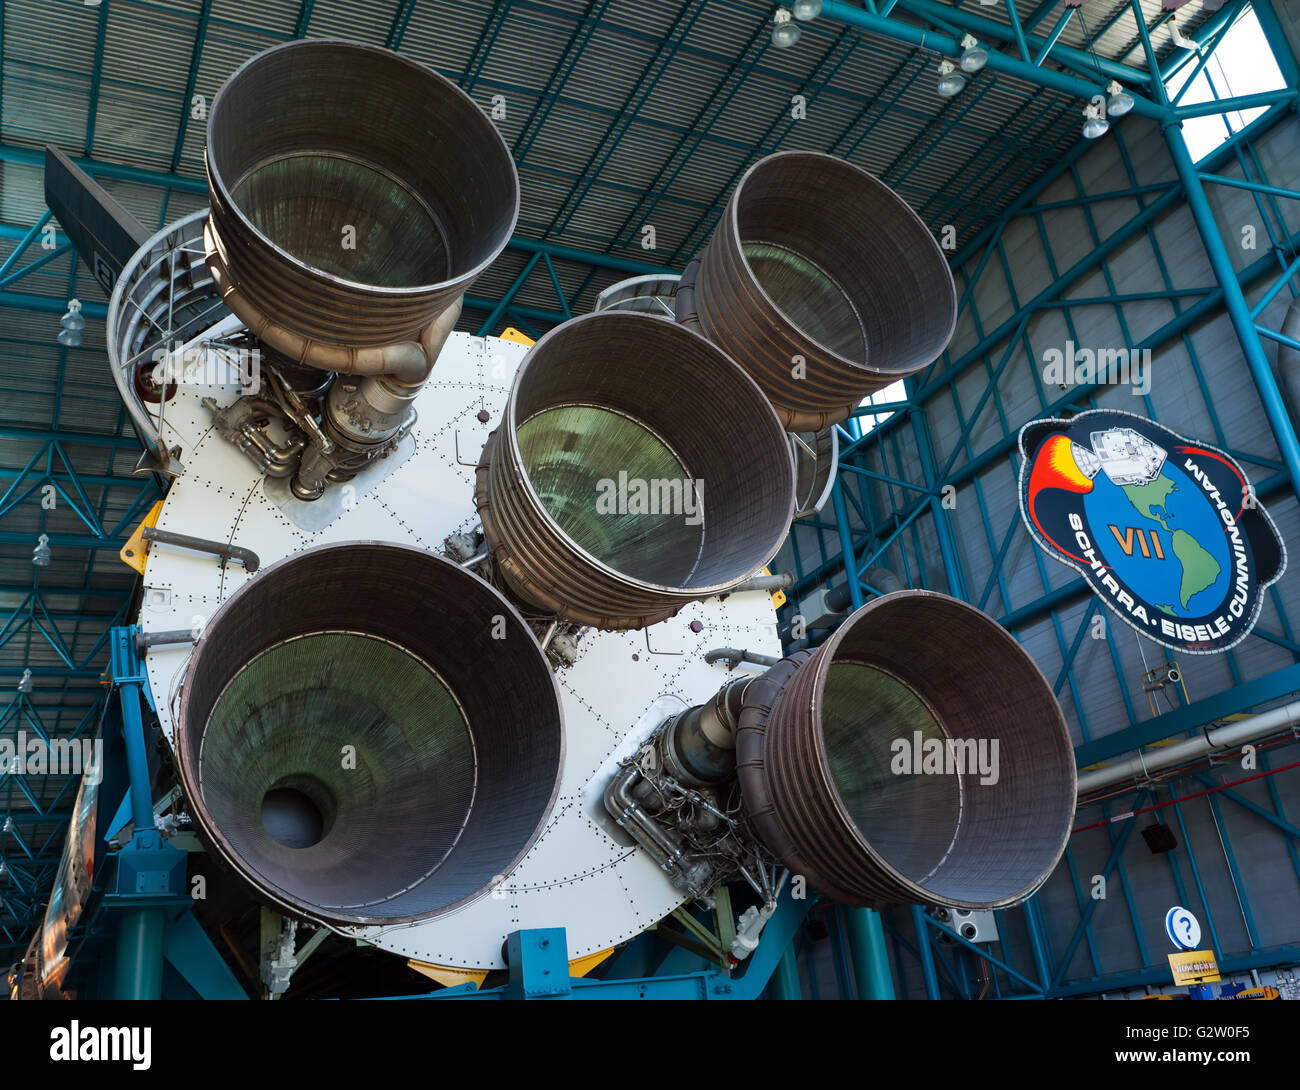 Giant Rocket Motors on the First Stage of NASA's Saturn V Rocket, which was used in the Apollo program to take - Stock Image